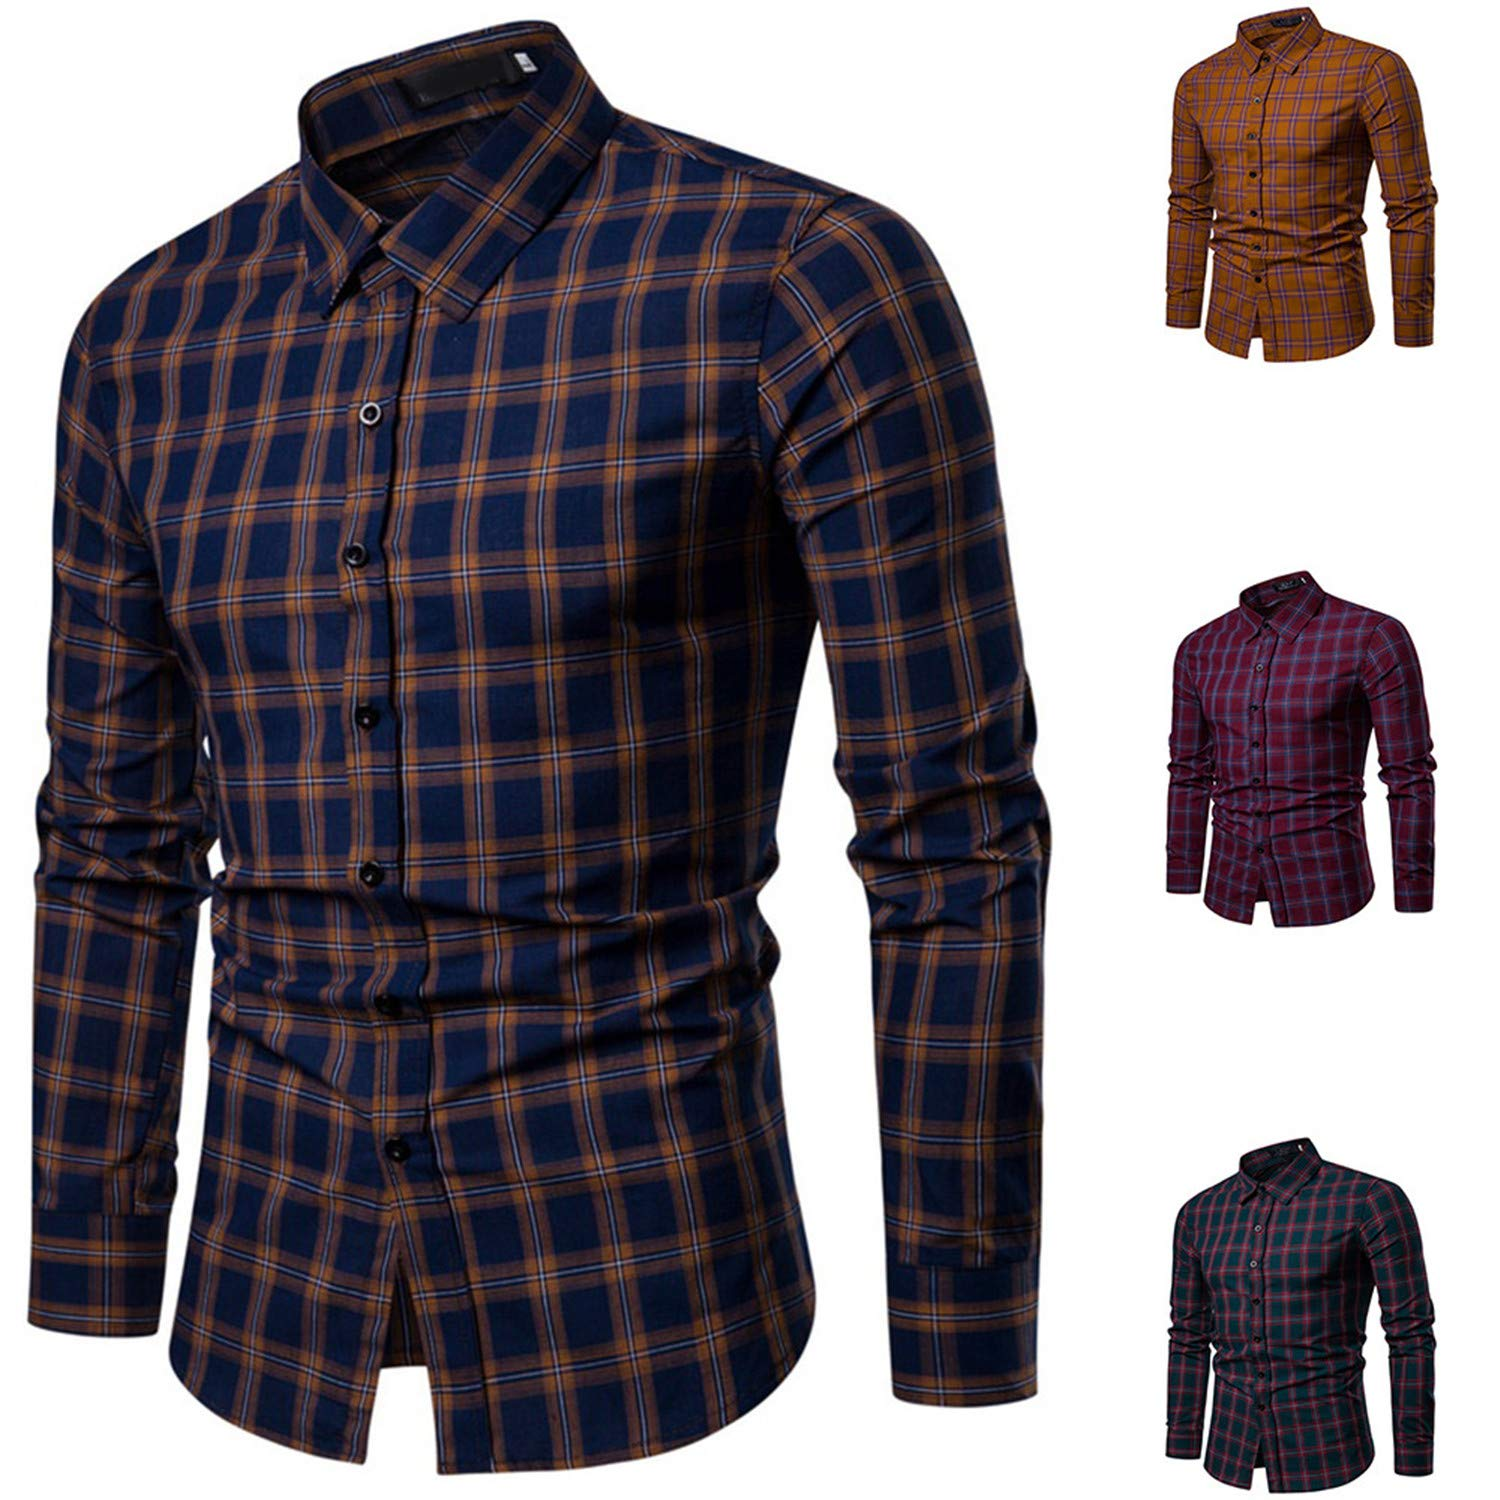 Mens Casual Long Sleeved Shirt Fashion Elegant Business Office Work Wear Blouse Navy